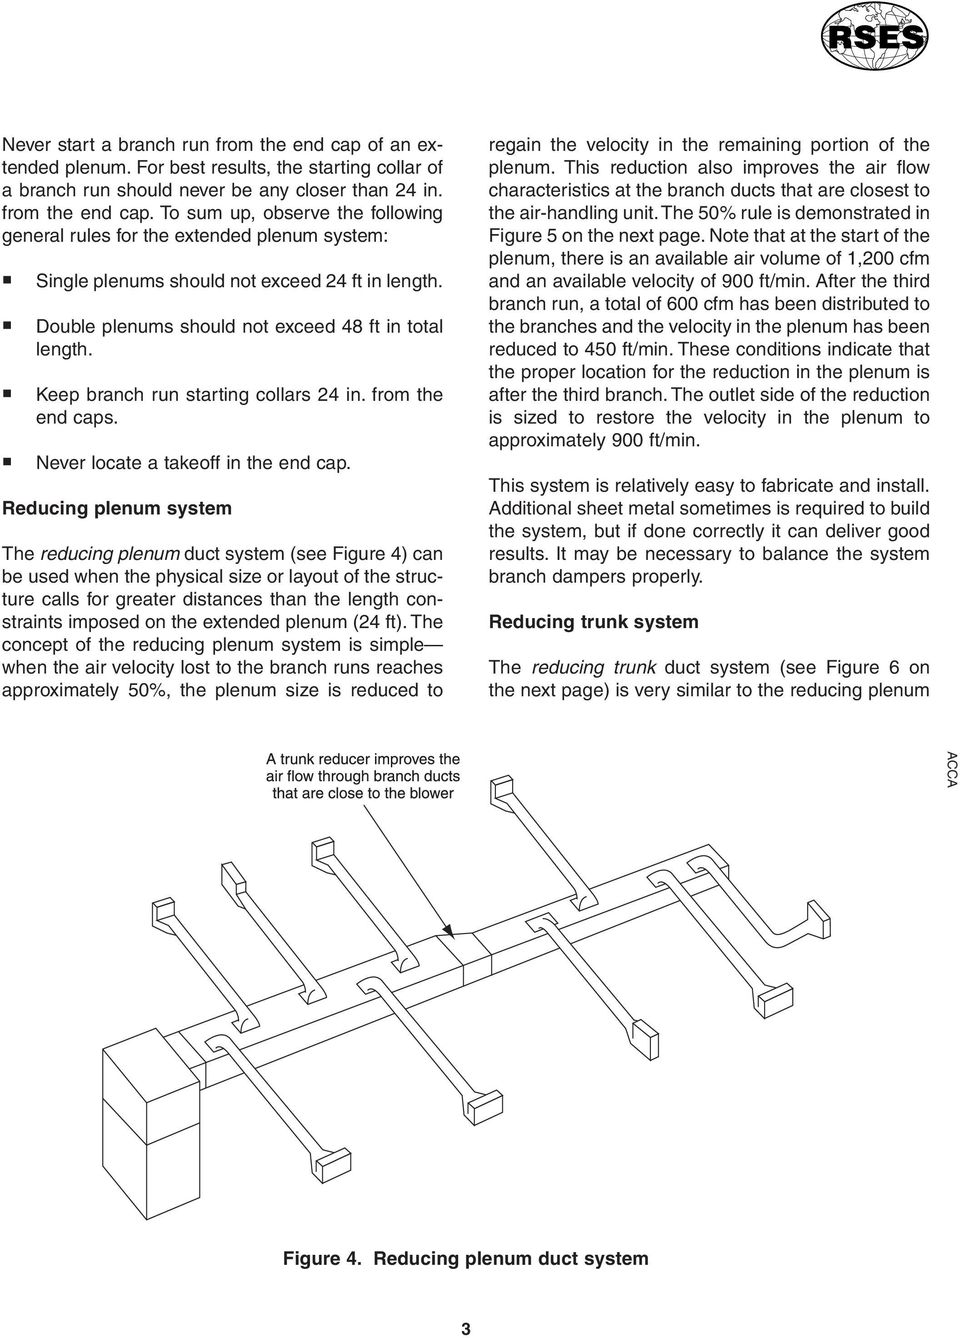 Reducing plenum system The reducing plenum duct system (see Figure 4) can be used when the physical size or layout of the structure calls for greater distances than the length constraints imposed on